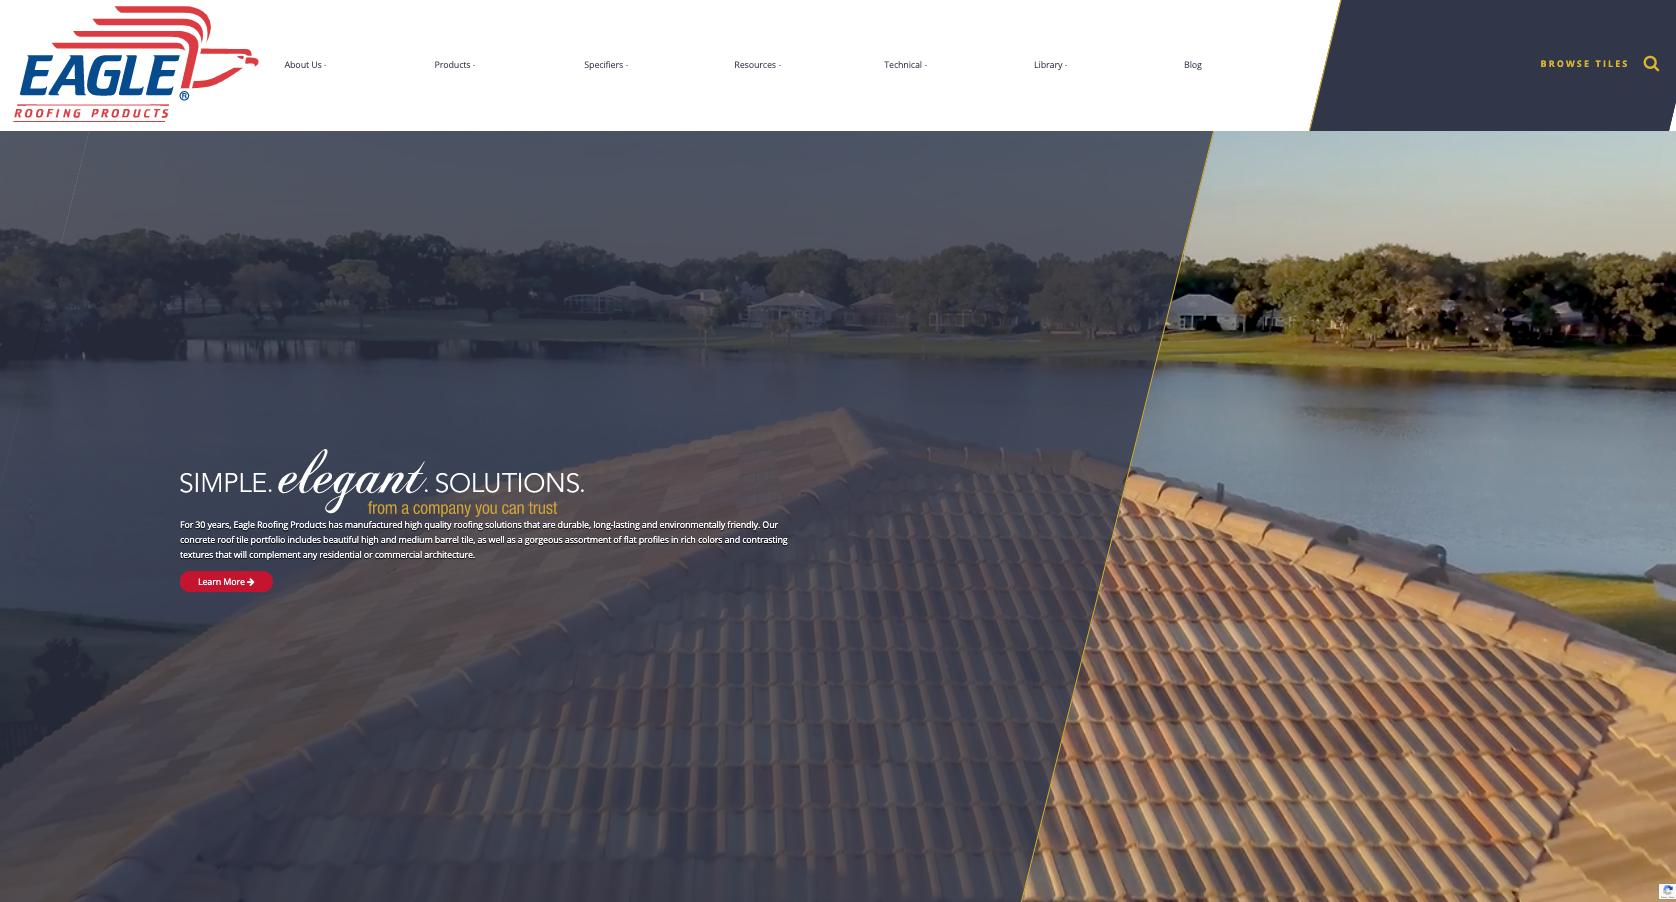 Eagle Roofing Products New Website Findsome Winmore